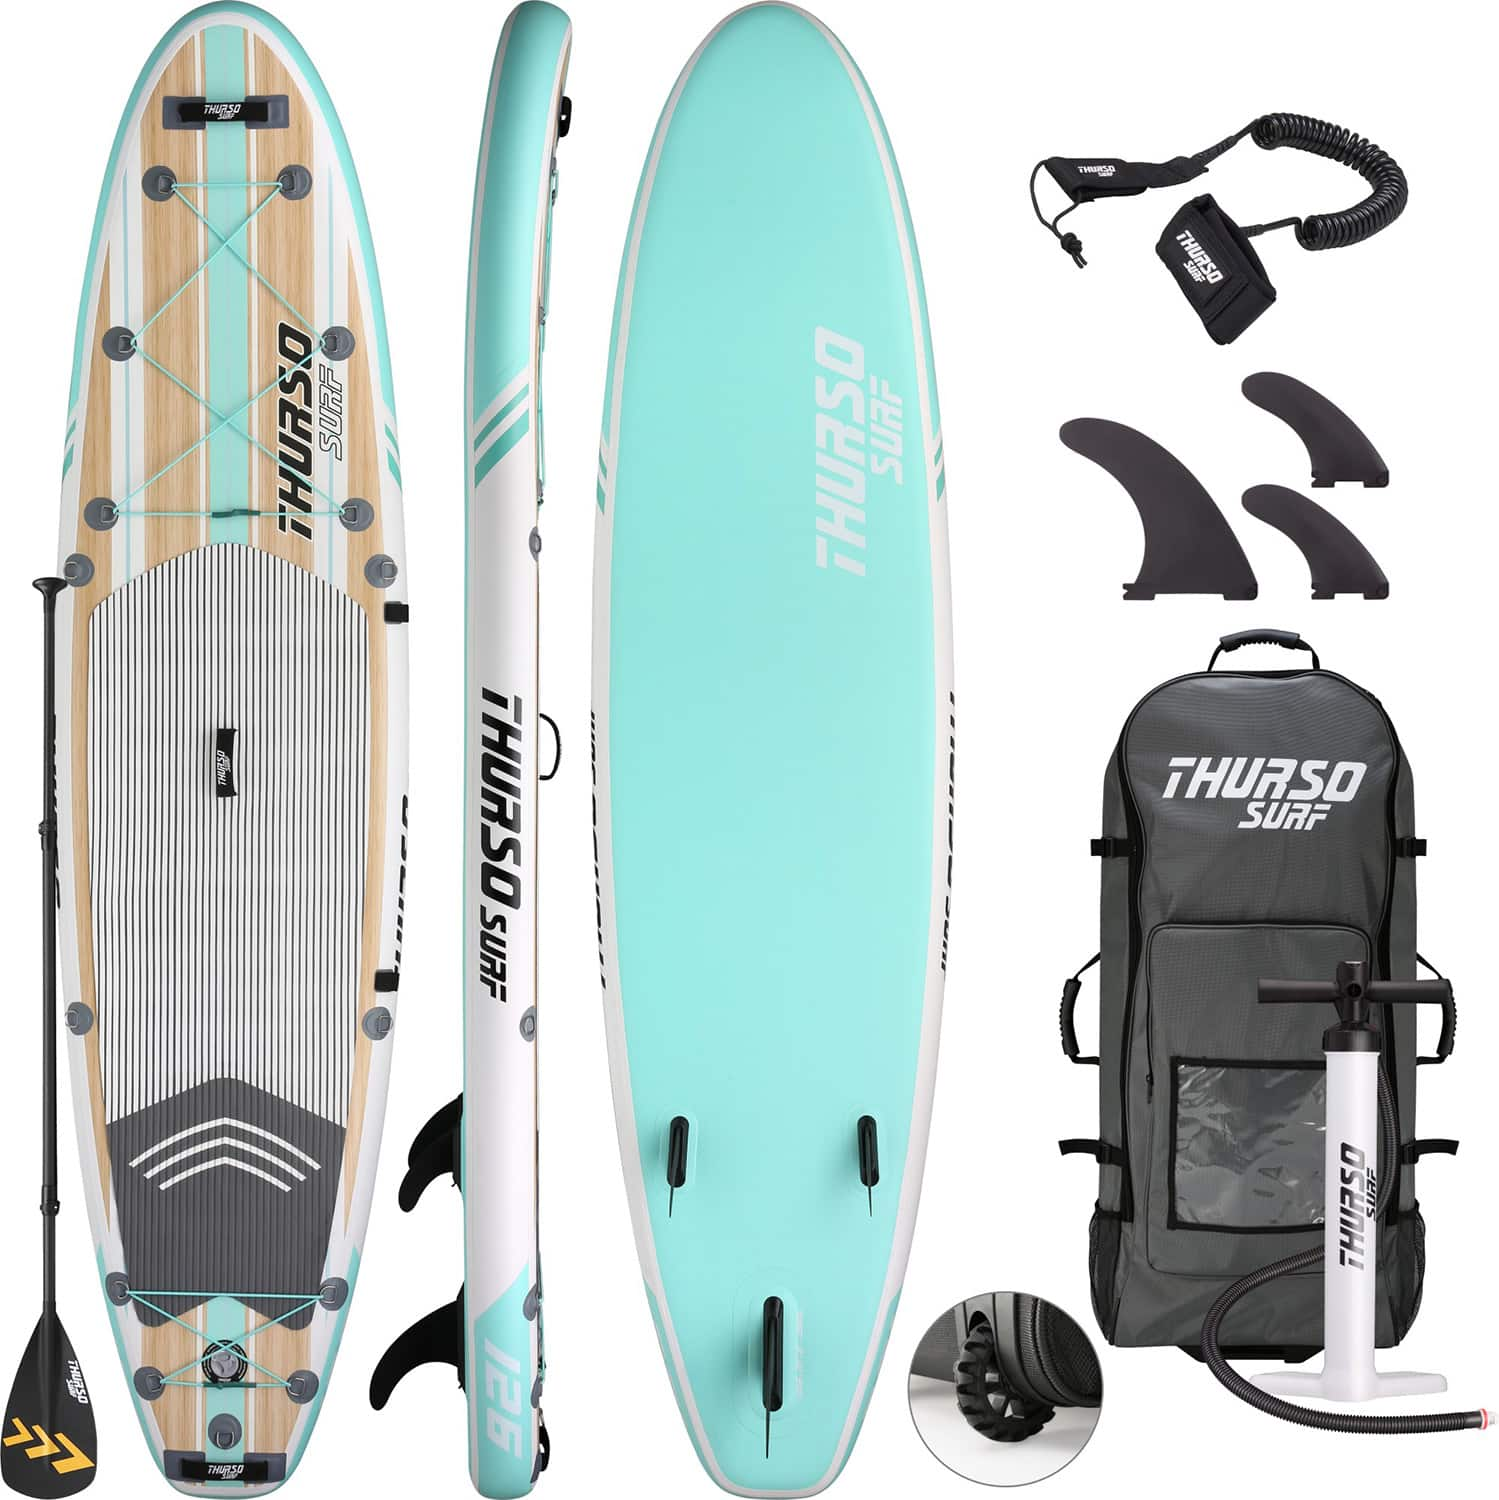 Thurso Surf Waterwalker 126 All-Around Inflatable SUP